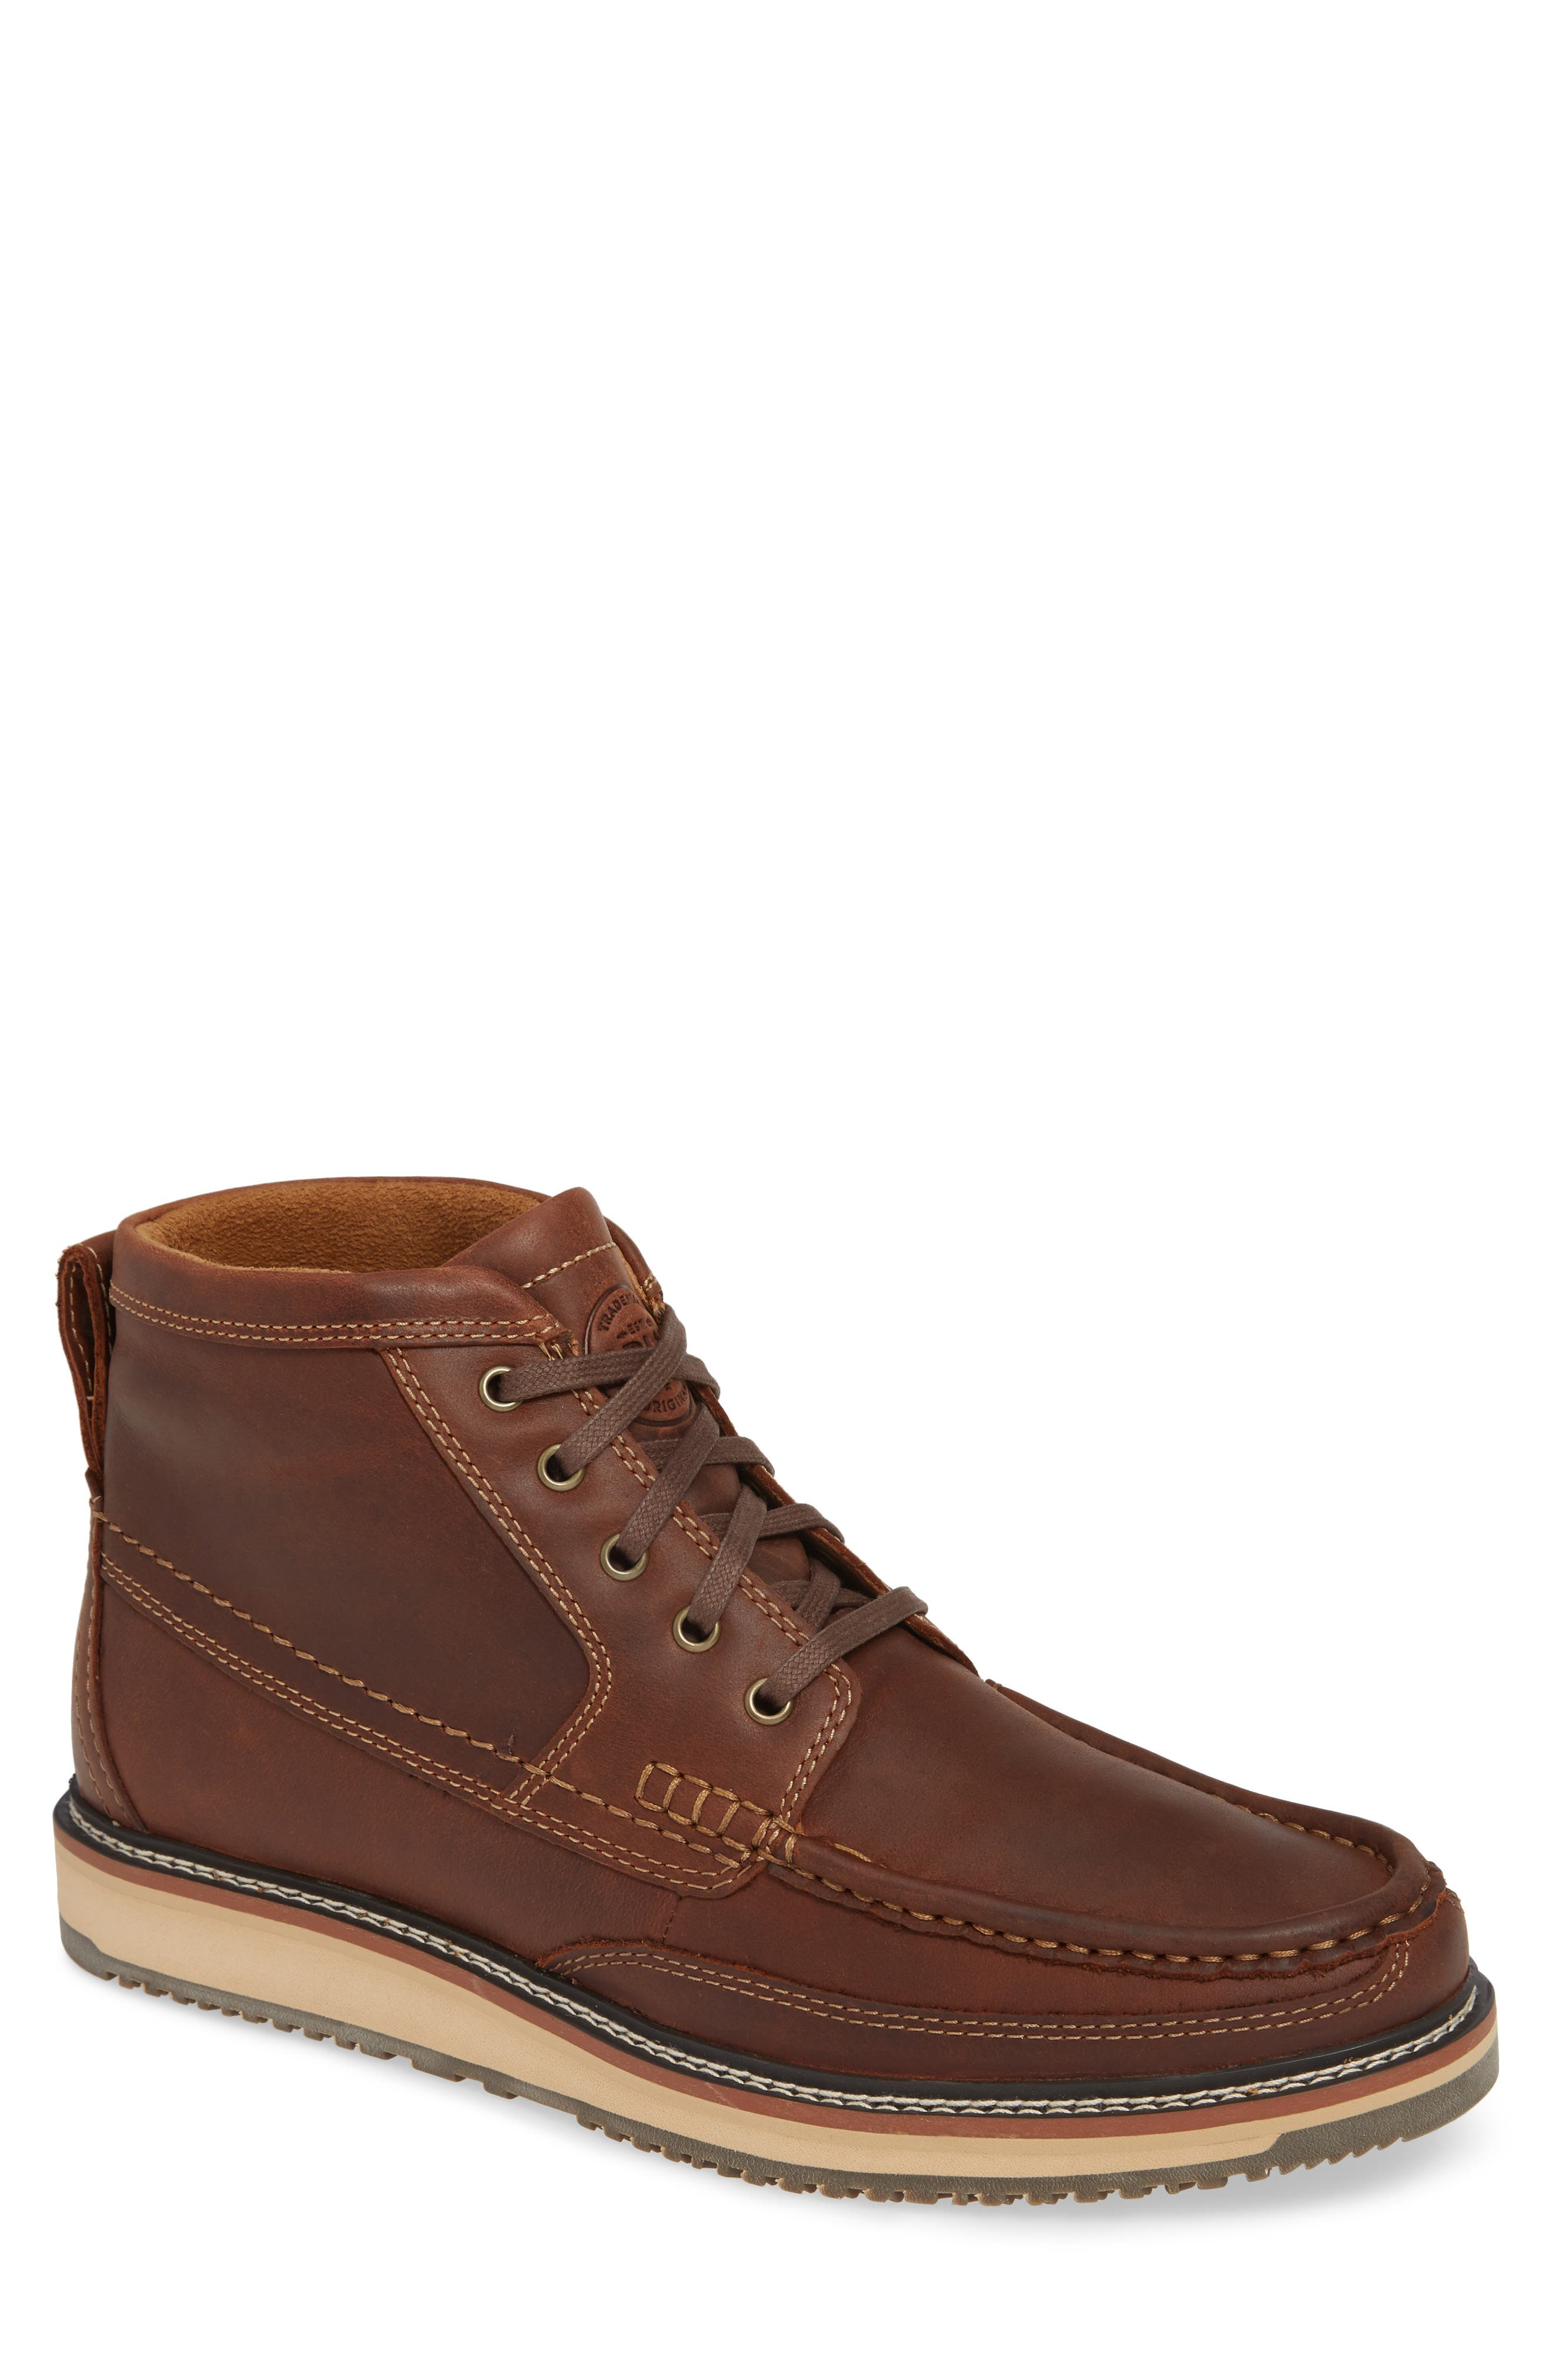 ARIAT 'Lookout' Moc Toe Boot, Main, color, FOOTHILL BROWN LEATHER